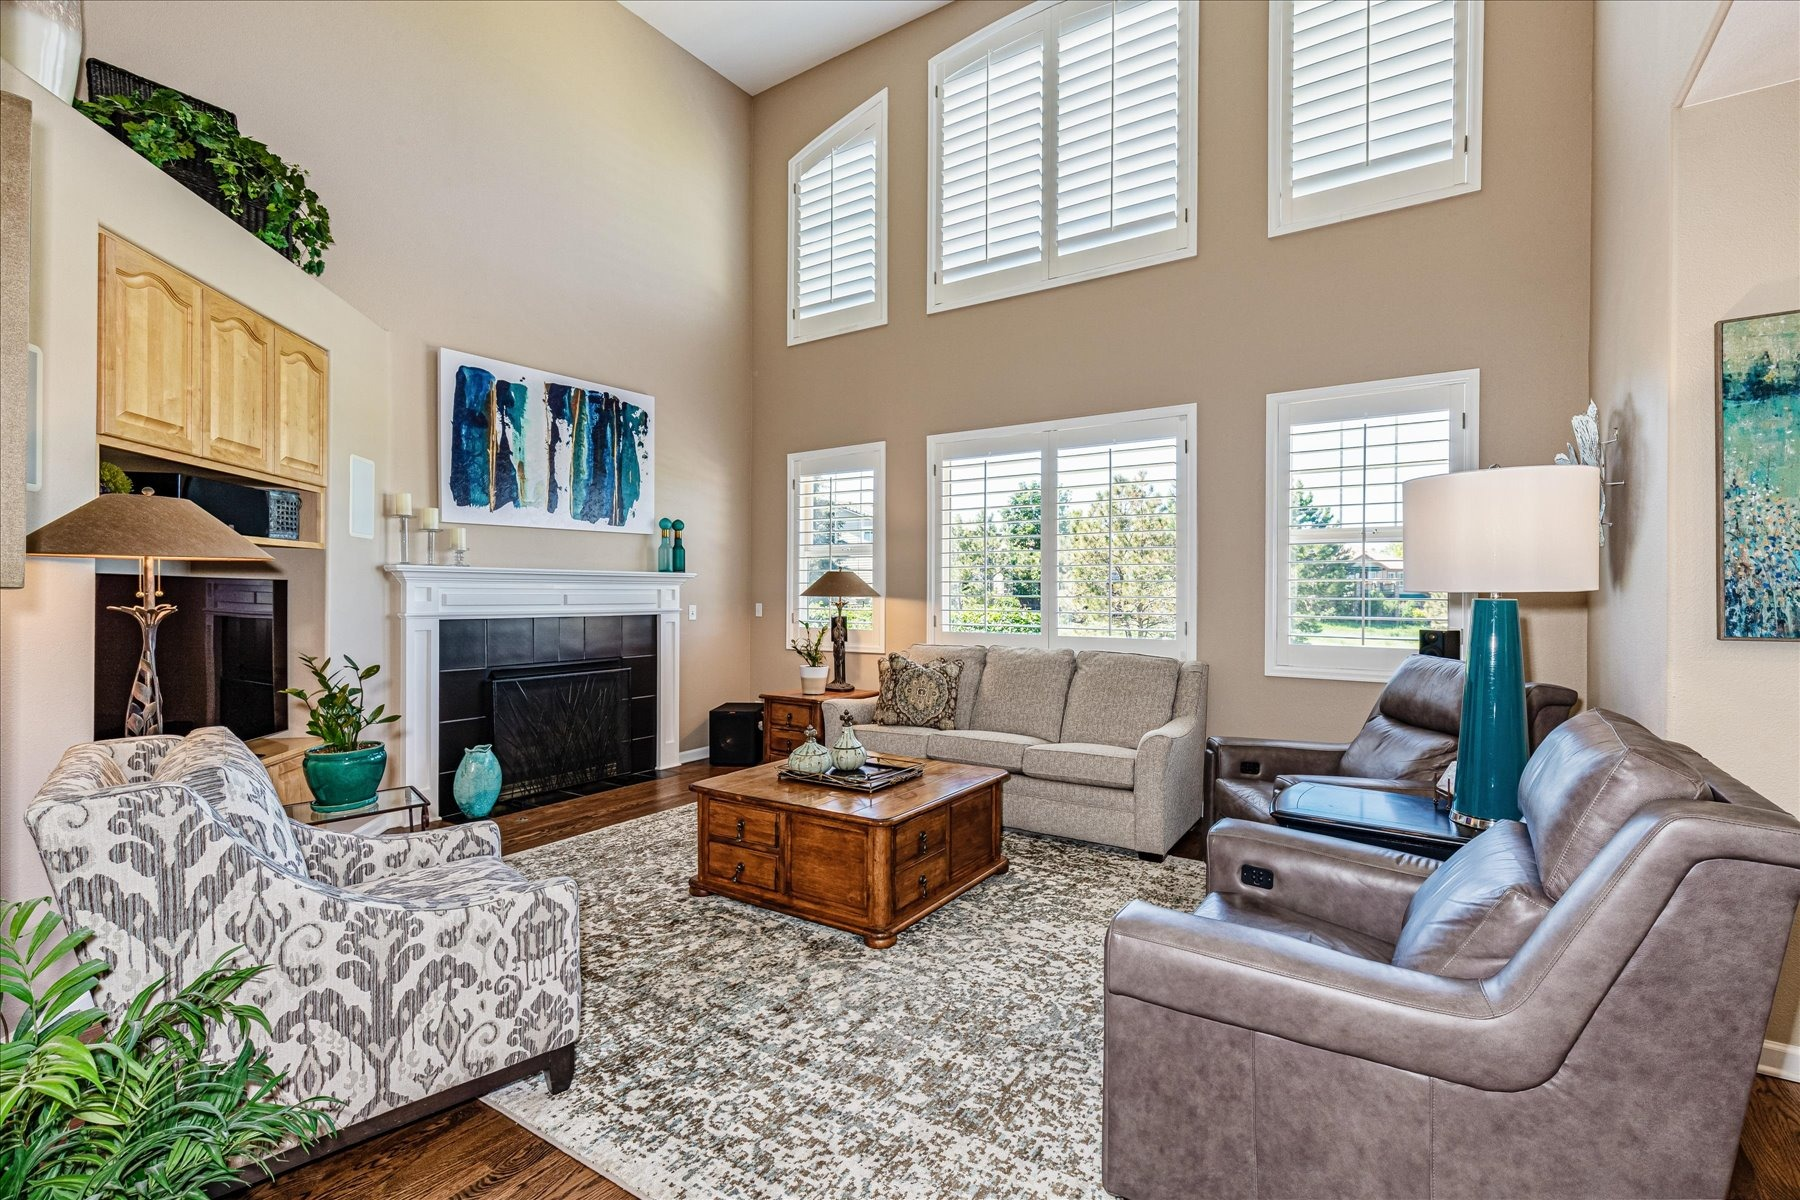 Grand Open Family Room with Built-ins & Fireplace